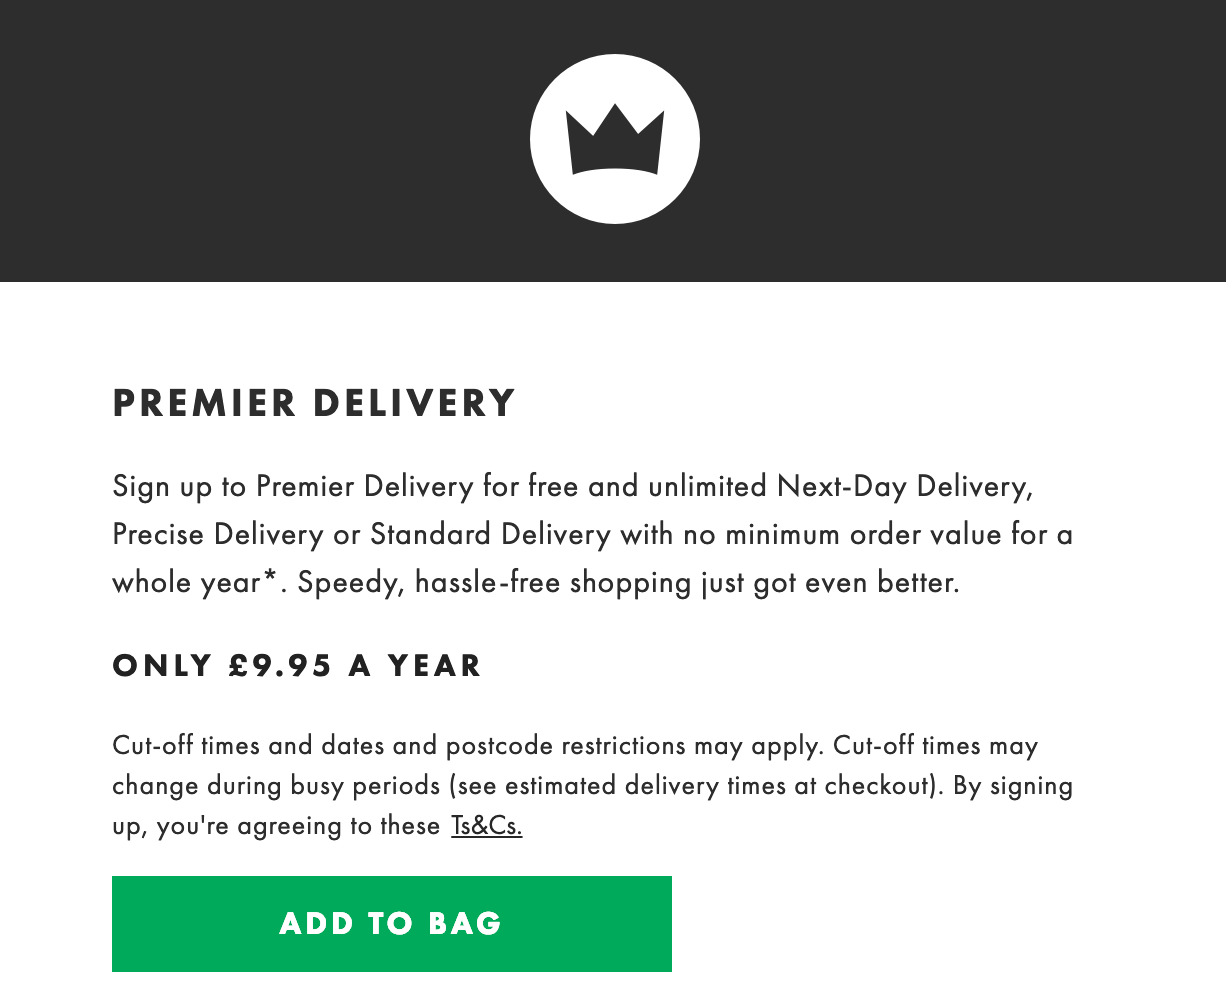 /Users/michaelglover/Downloads/ASOS Premier Delivery Retail Loyalty Programs